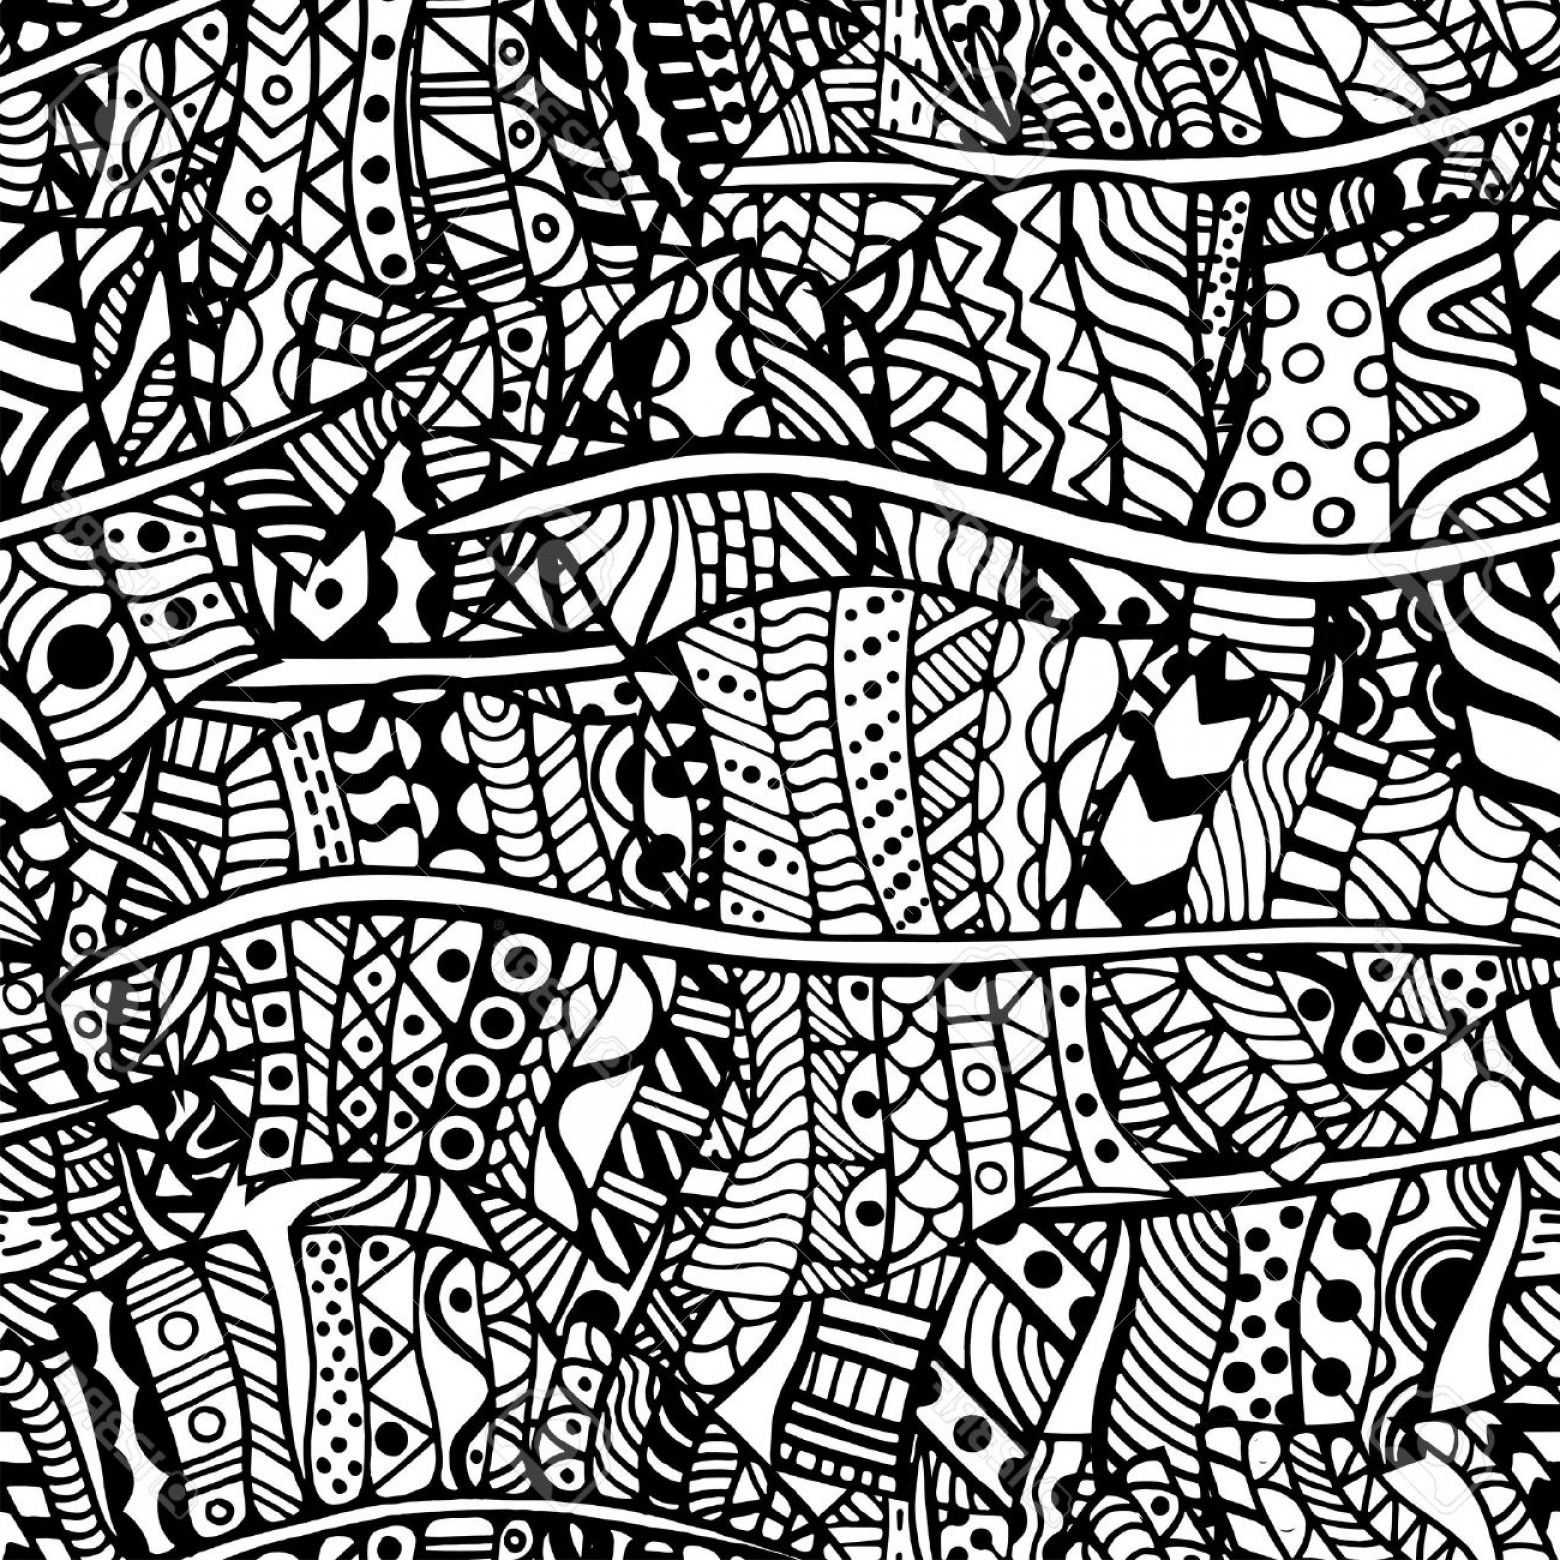 Zentangle Vector: Photostock Vector Artistically Ethnic Pattern Hand Drawn Ethnic Floral Retro Doodle Vector Zentangle Tribal Design Ele